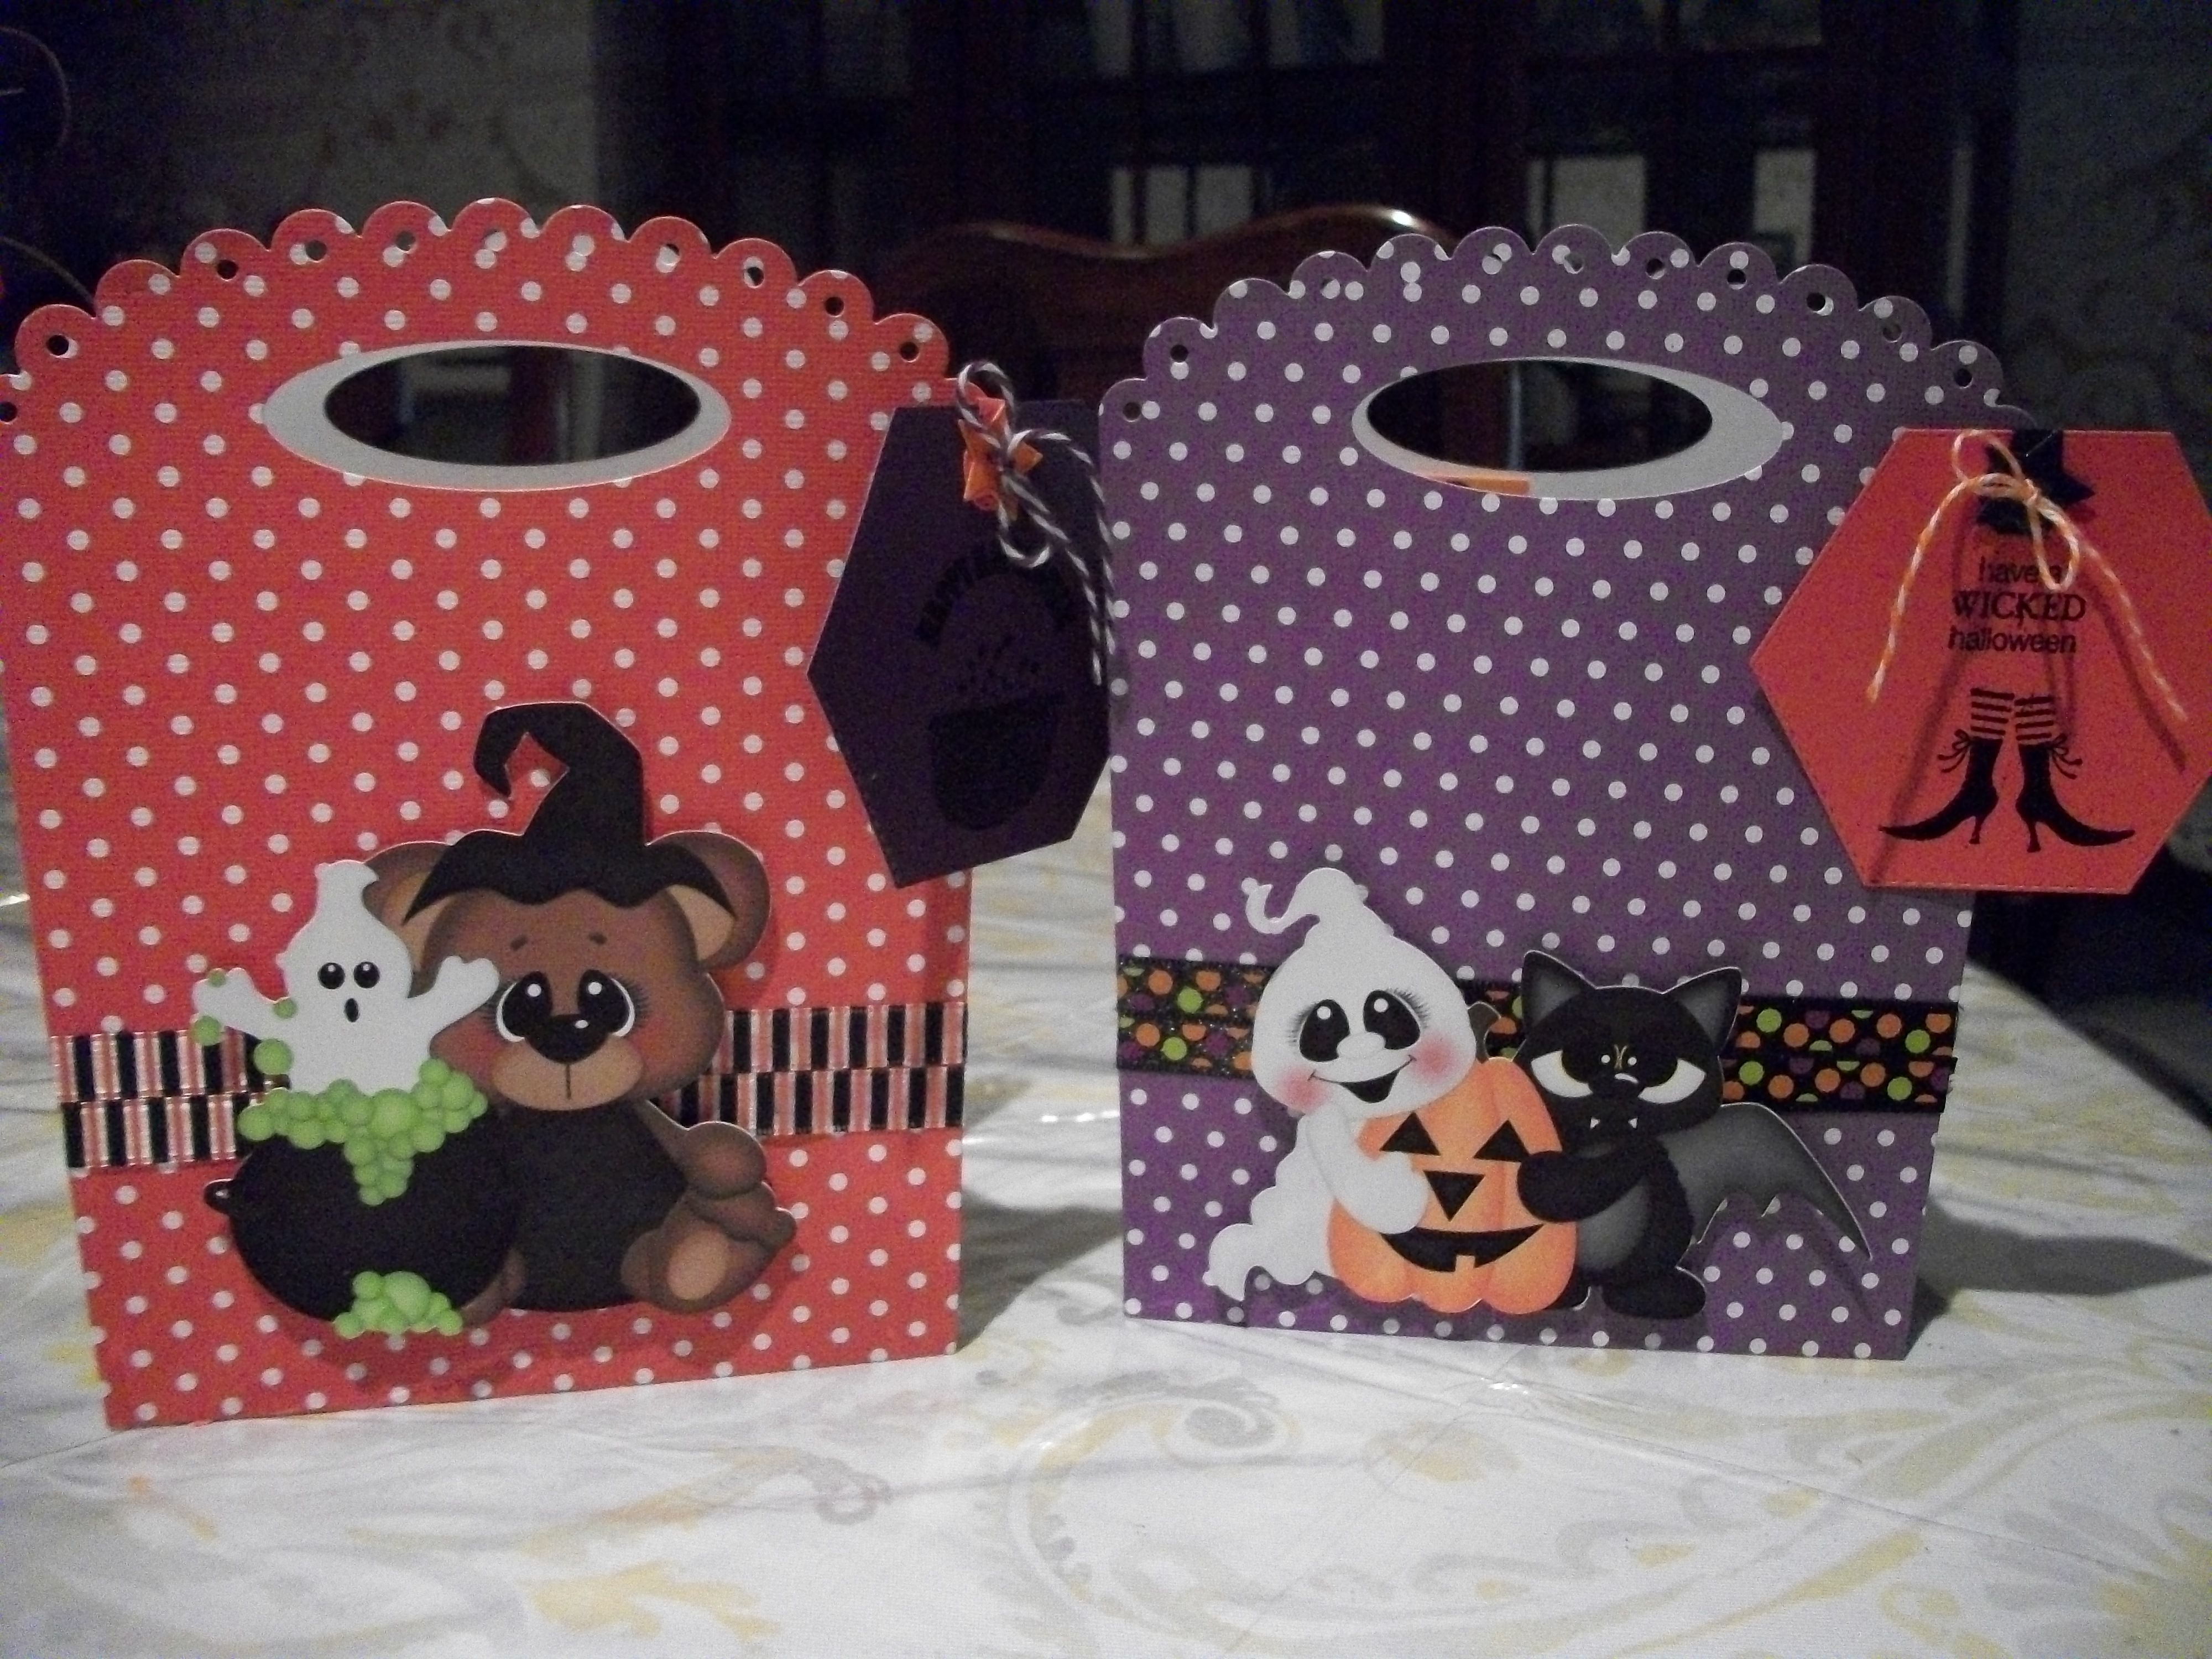 Halloween bags I made using pti die for my granddaughters' teachers for Halloween